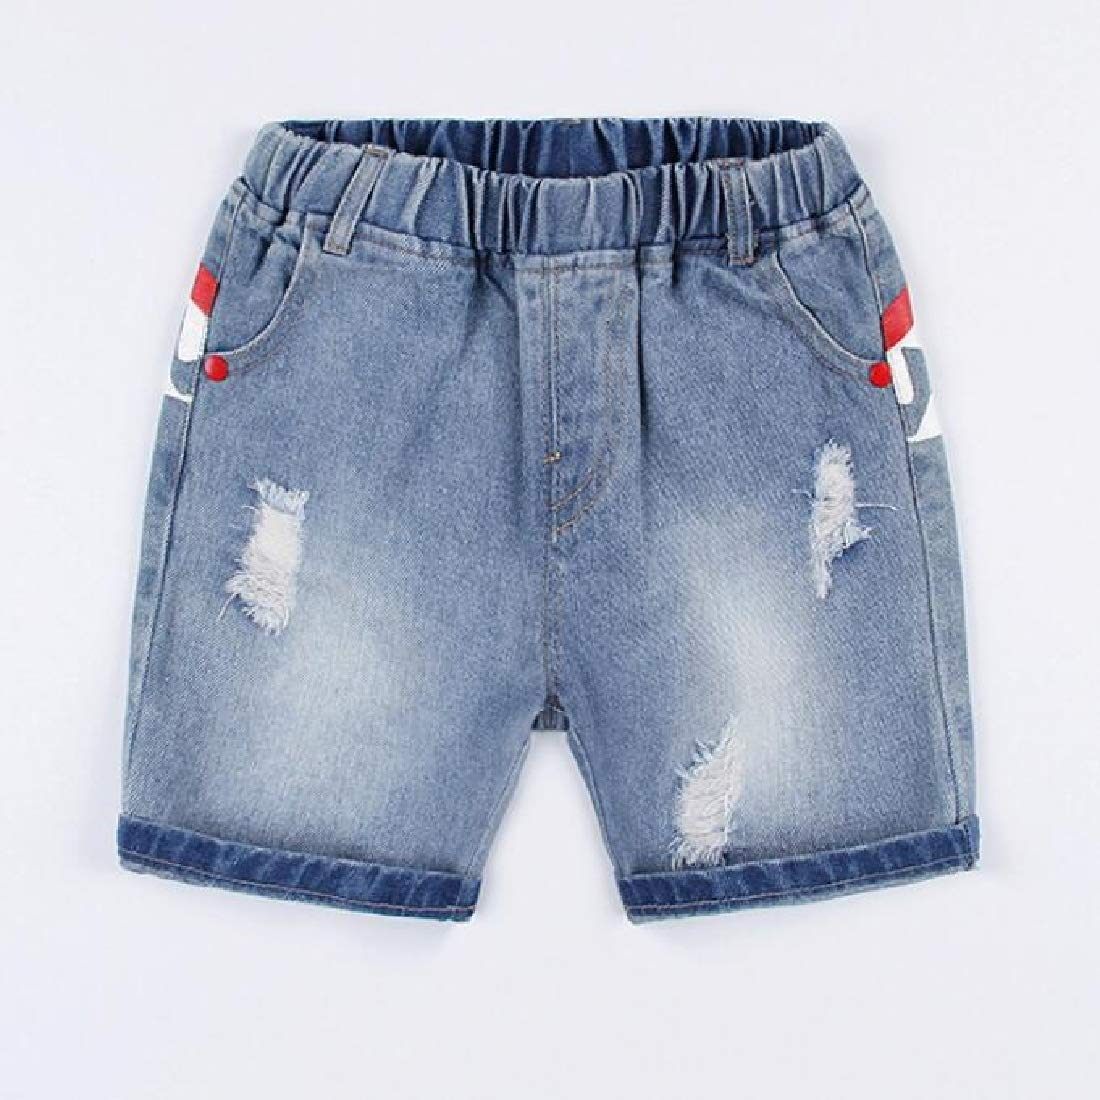 Pandapang Boys Distressed Jean Denim Printed Vogue Elastic-Waist Shorts